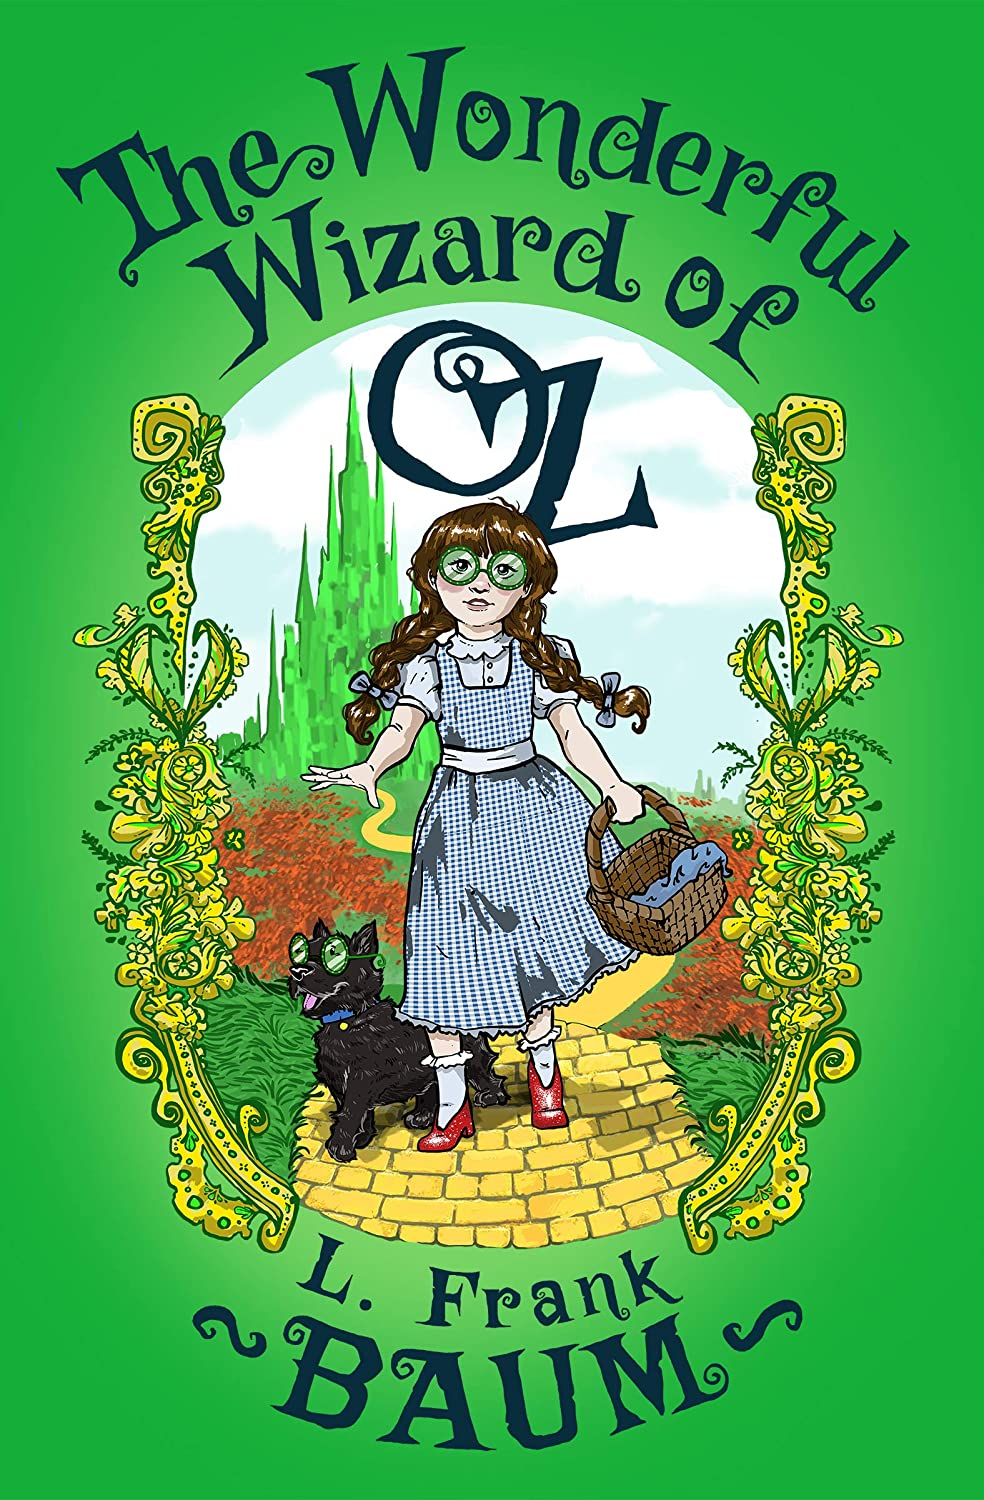 The Wonderful Wizard of Oz (The Oz Series Book 1) (English Edition ...